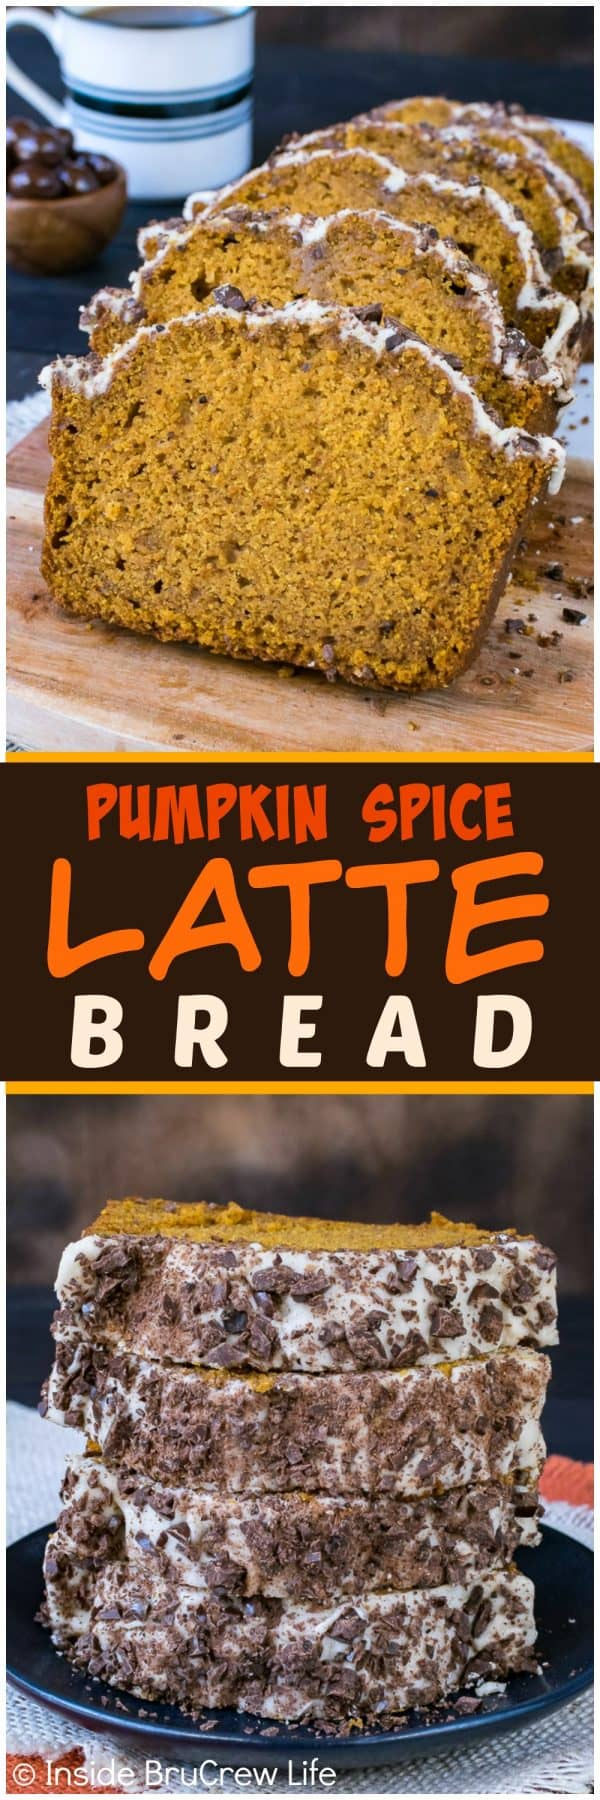 Pumpkin Spice Latte Bread - this sweet pumpkin bread has a coffee glaze & chocolate covered coffee beans. Great recipe for fall breakfast!